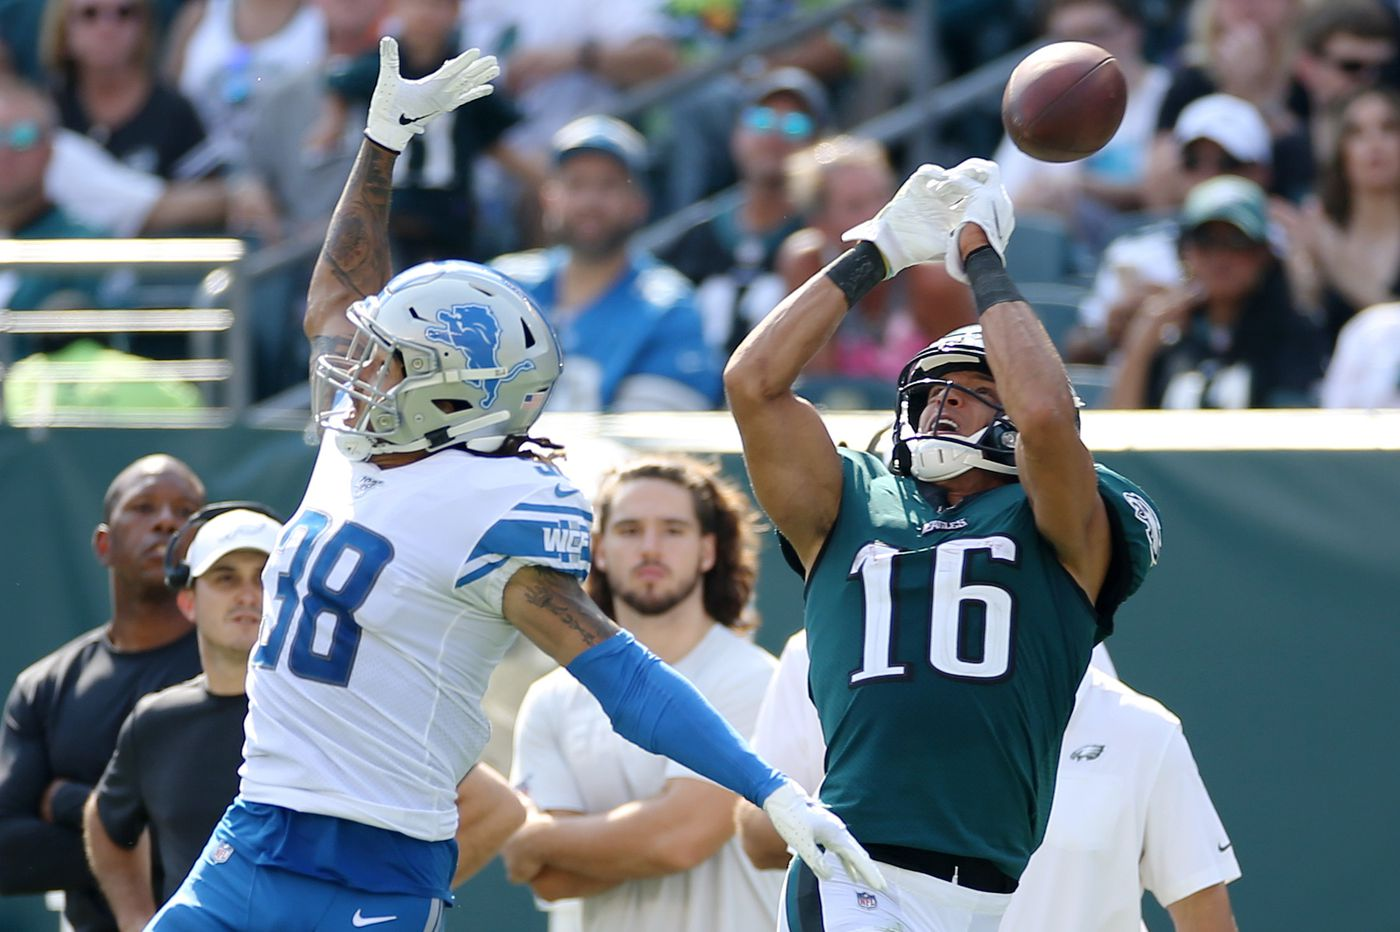 Eagles' expectations for wide receivers were wildly unrealistic, it seems; now the offense grinds it out